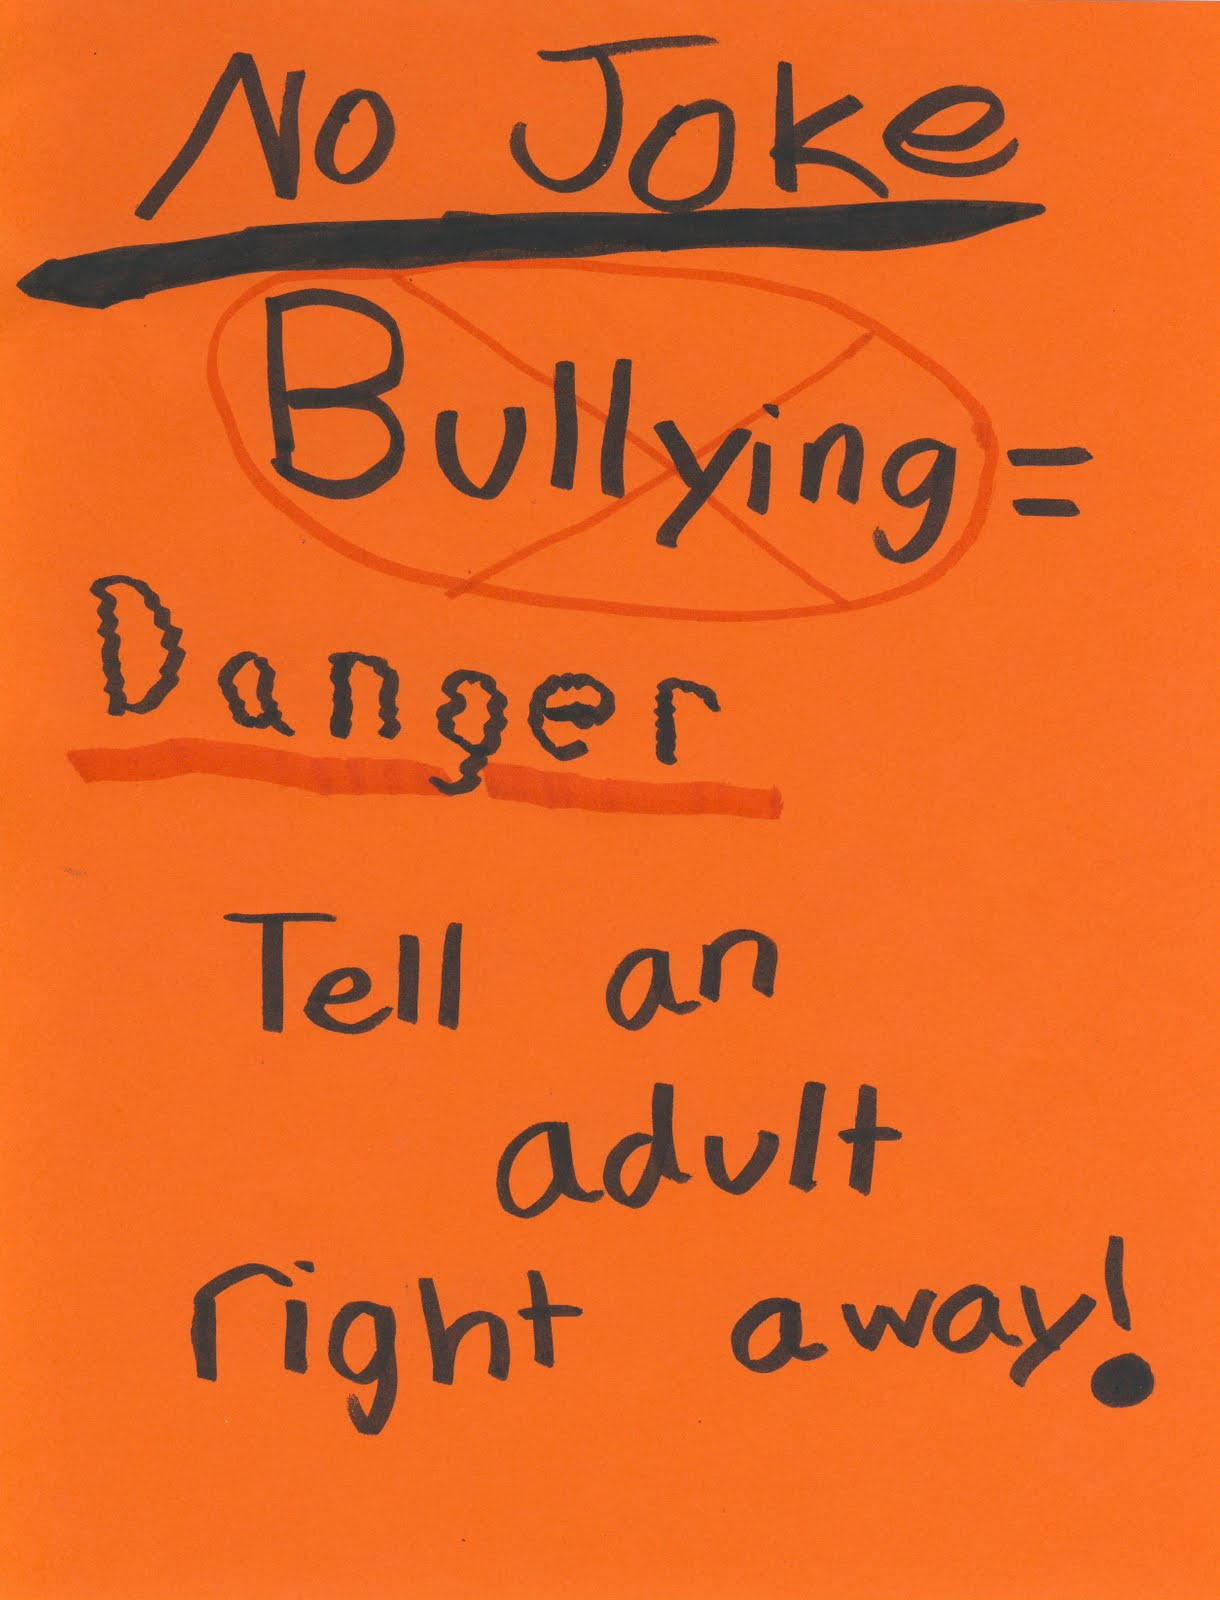 Dbs School Counselor Fifth Grade Anti Bullying Activities